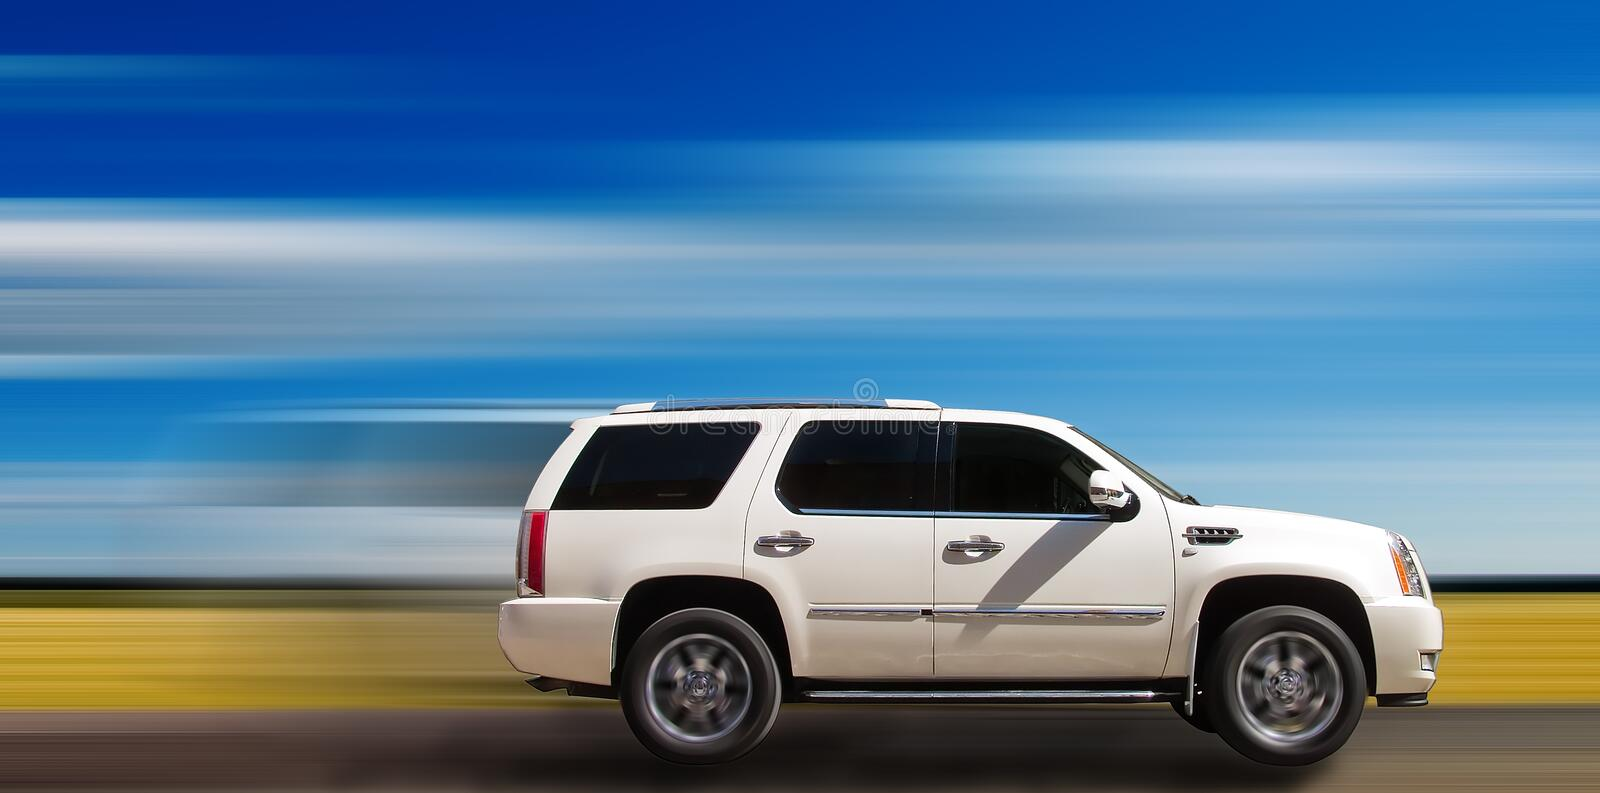 SUV on motion background. White SUV driving on the highway with blue motion background